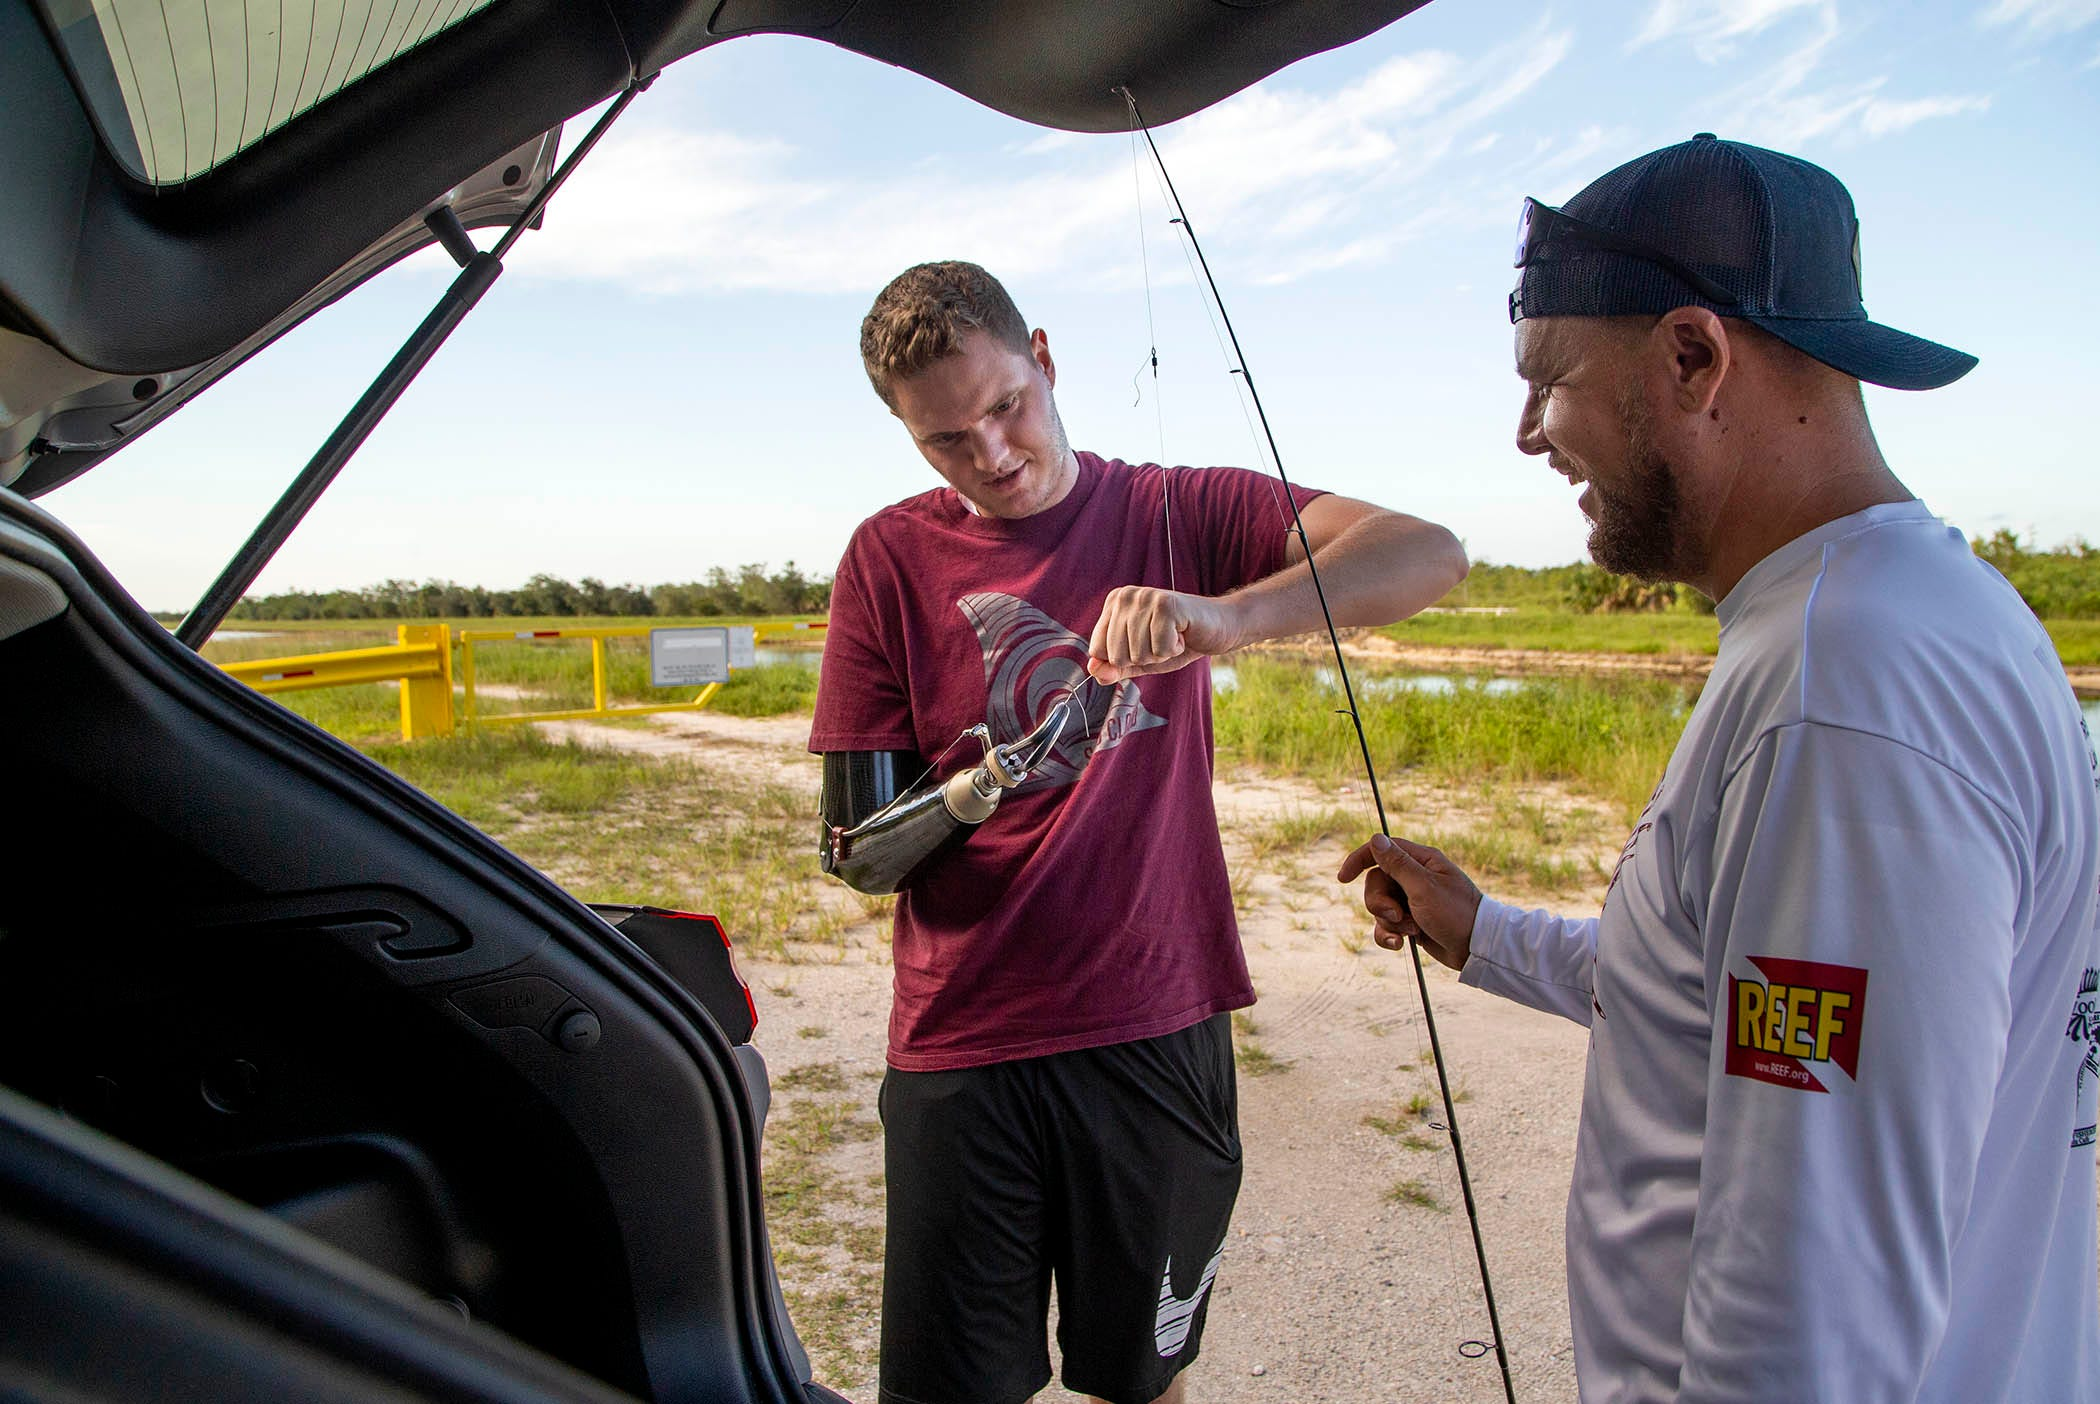 Carter Viss ties a knot in his fishing line on Aug. 7 as he prepares to go fishing at Sandhill Crane Access Park with his friend and rescuer Andy Earl.